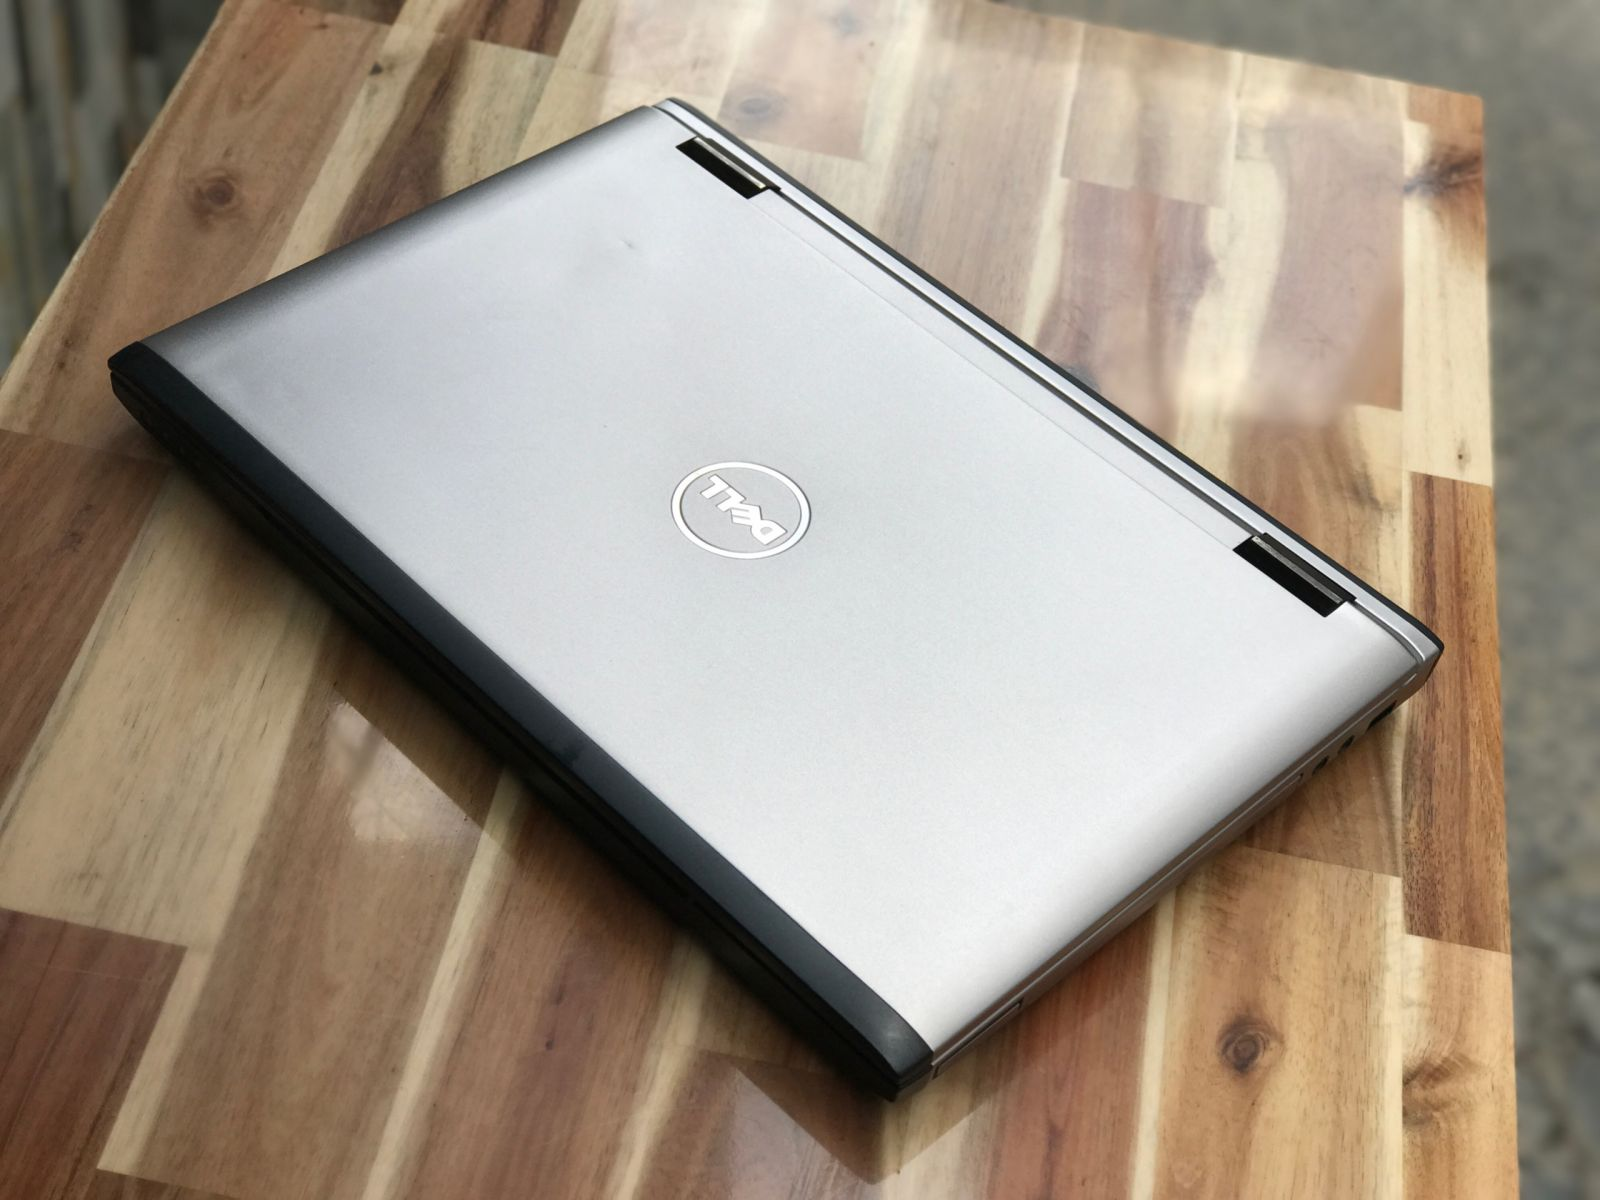 Laptop Dell Vostro 3550 / i7 Sandy Bridge/ 8G/ SSD128-500G/ 15in/ Vga rời/ Win 10/ Giá rẻ1